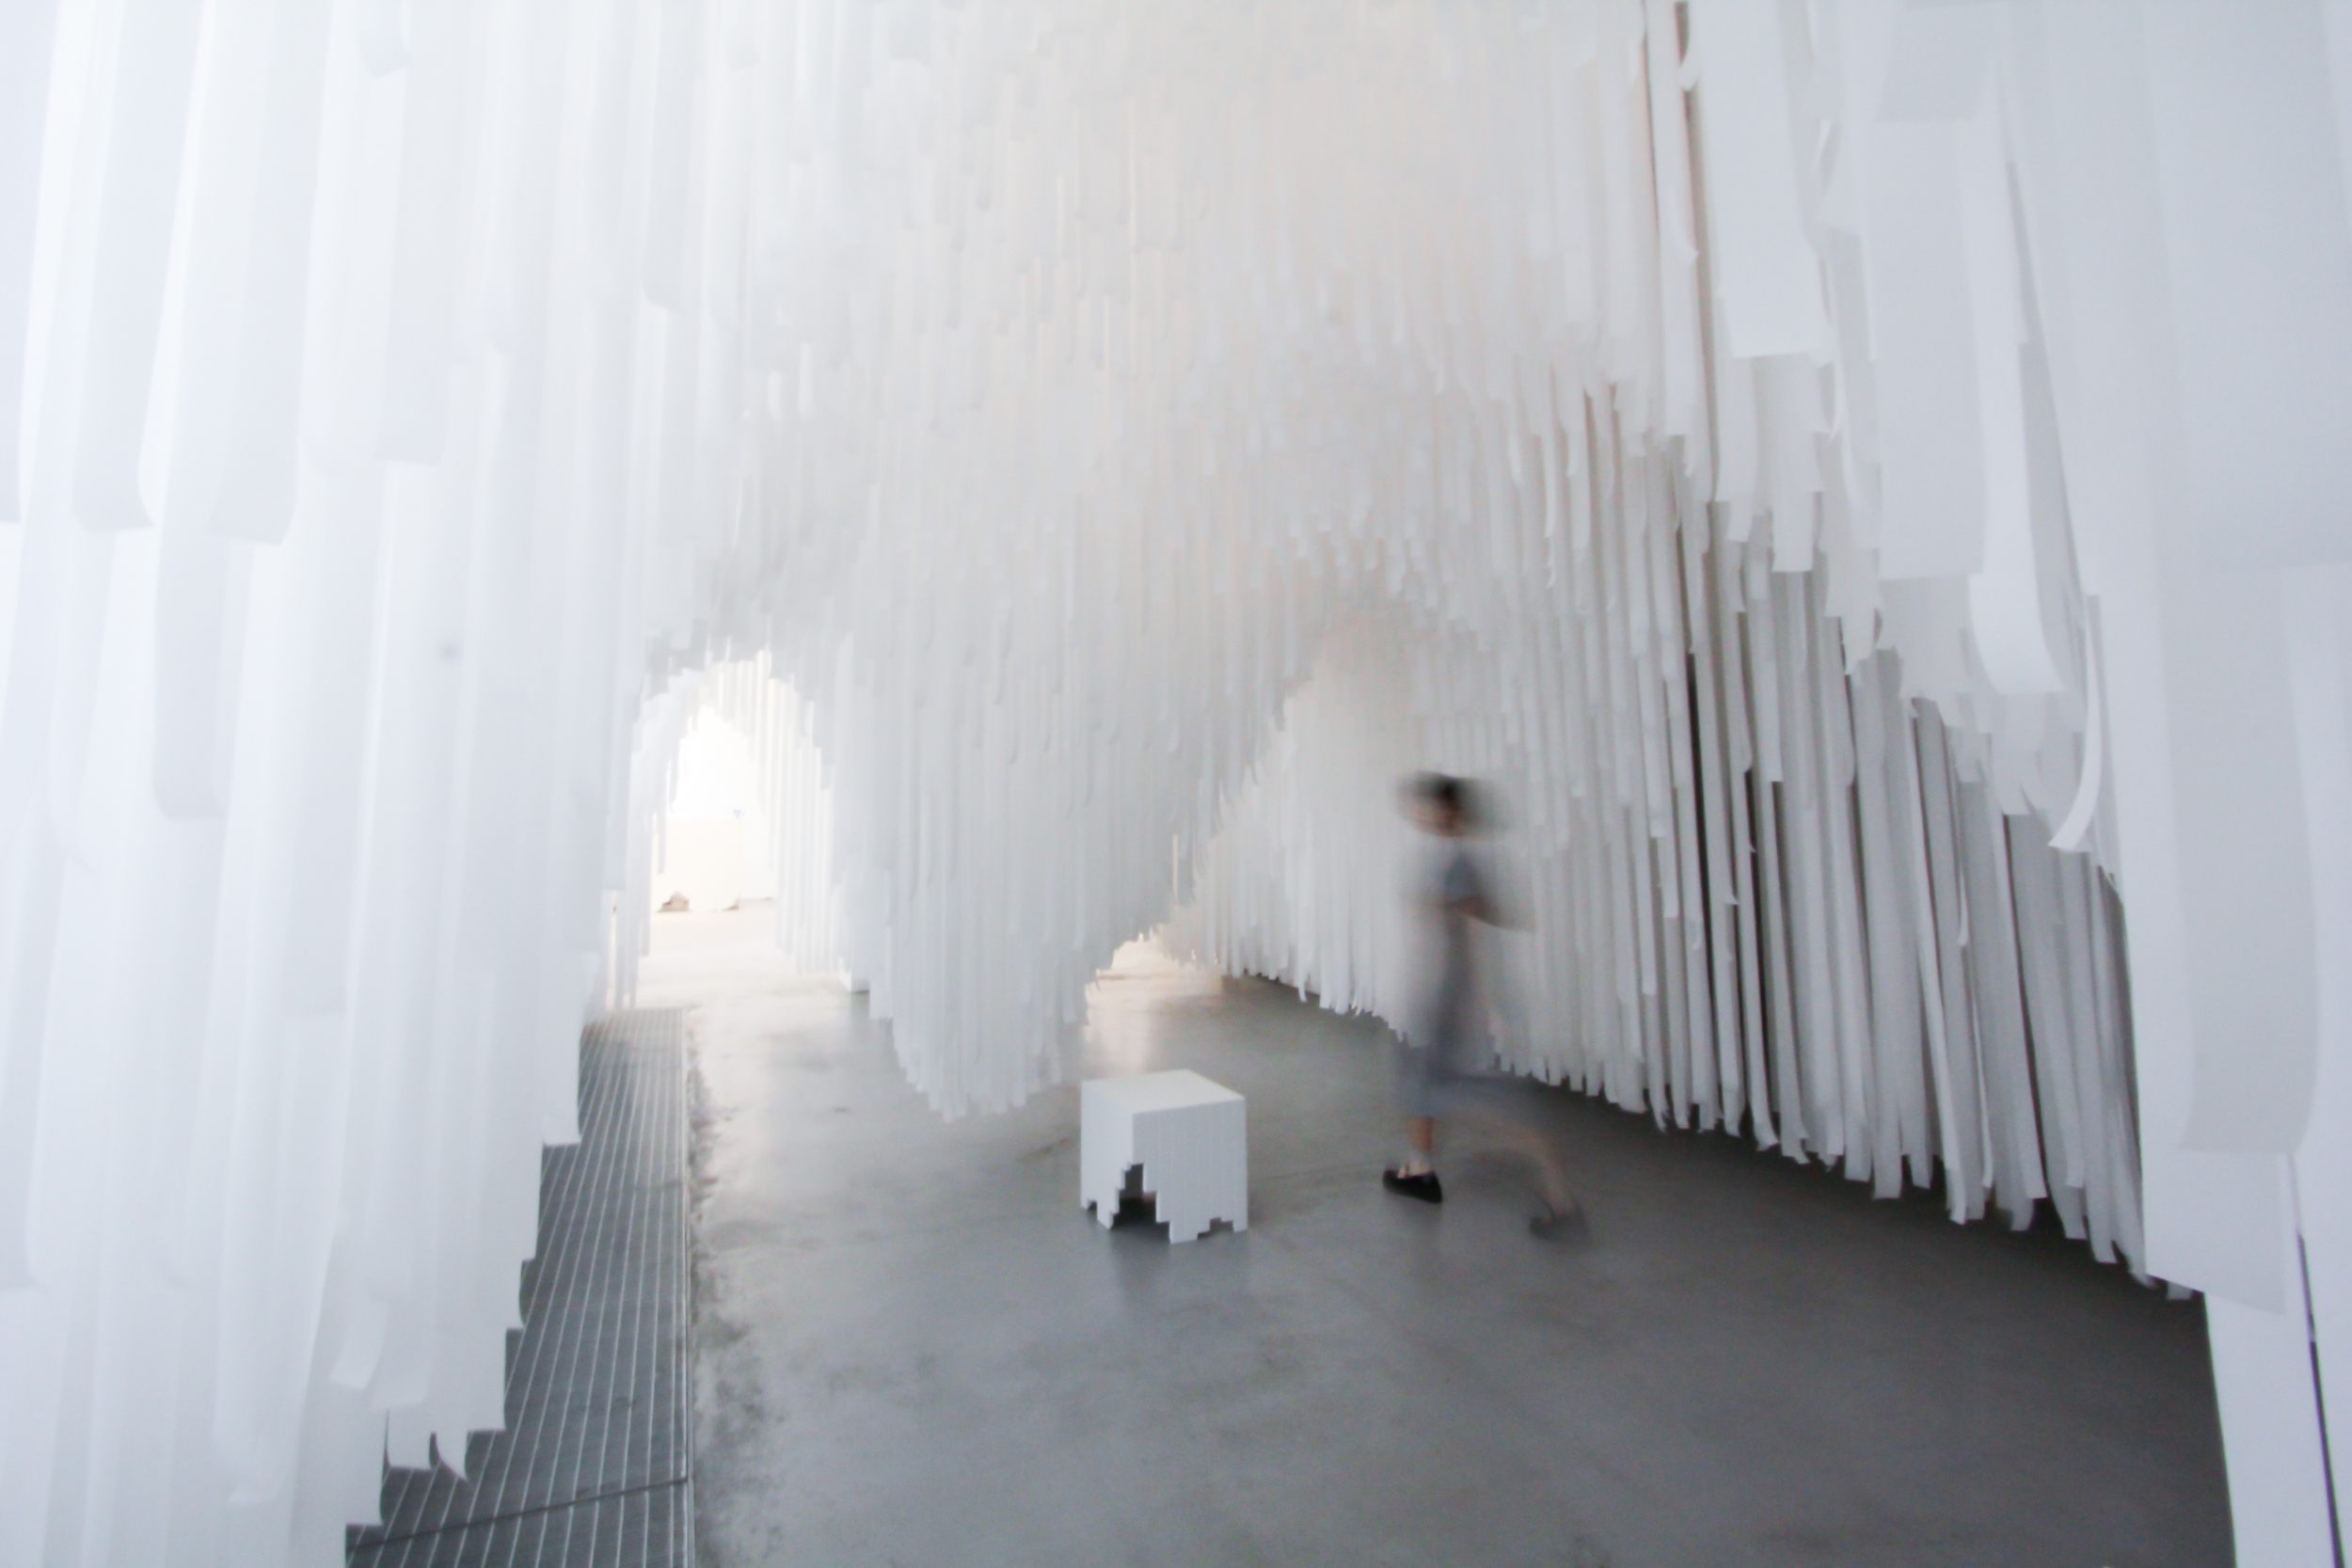 Exploring the tunnels. COS x Snarkitecture.  image ©futurecrafter